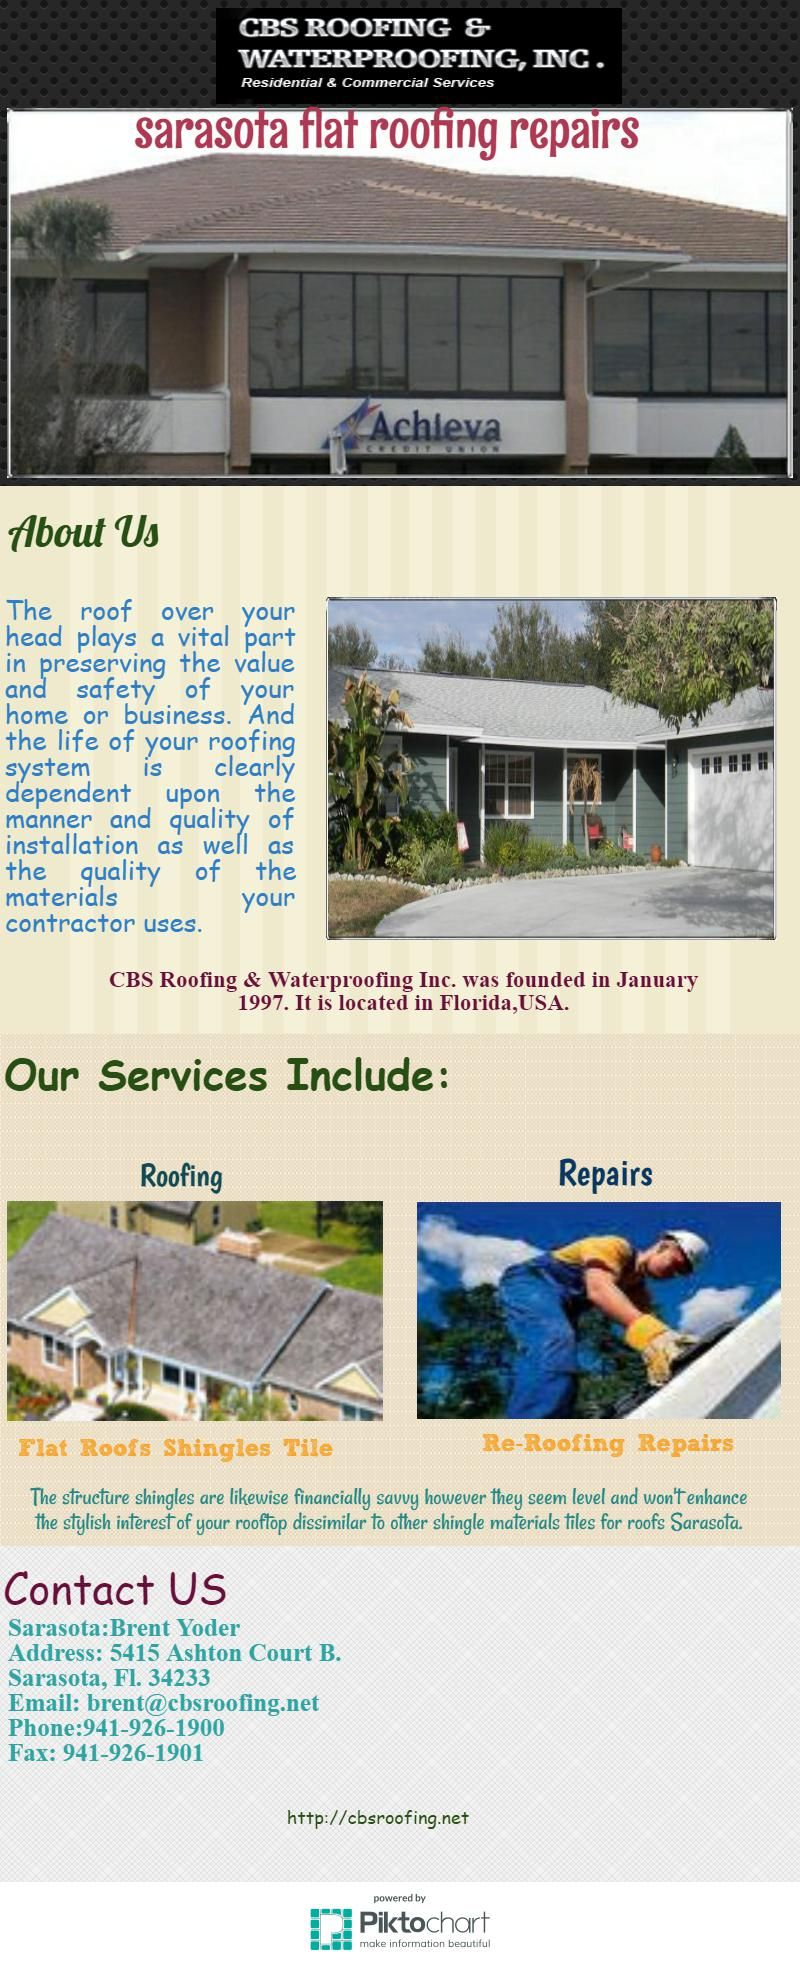 The Wooden Shingles Are Additionally Prescribed By A Few Roofers Since They Give Fabulous Stylish Interest To Your Rooftop And W Sarasota Shingling Roof Repair